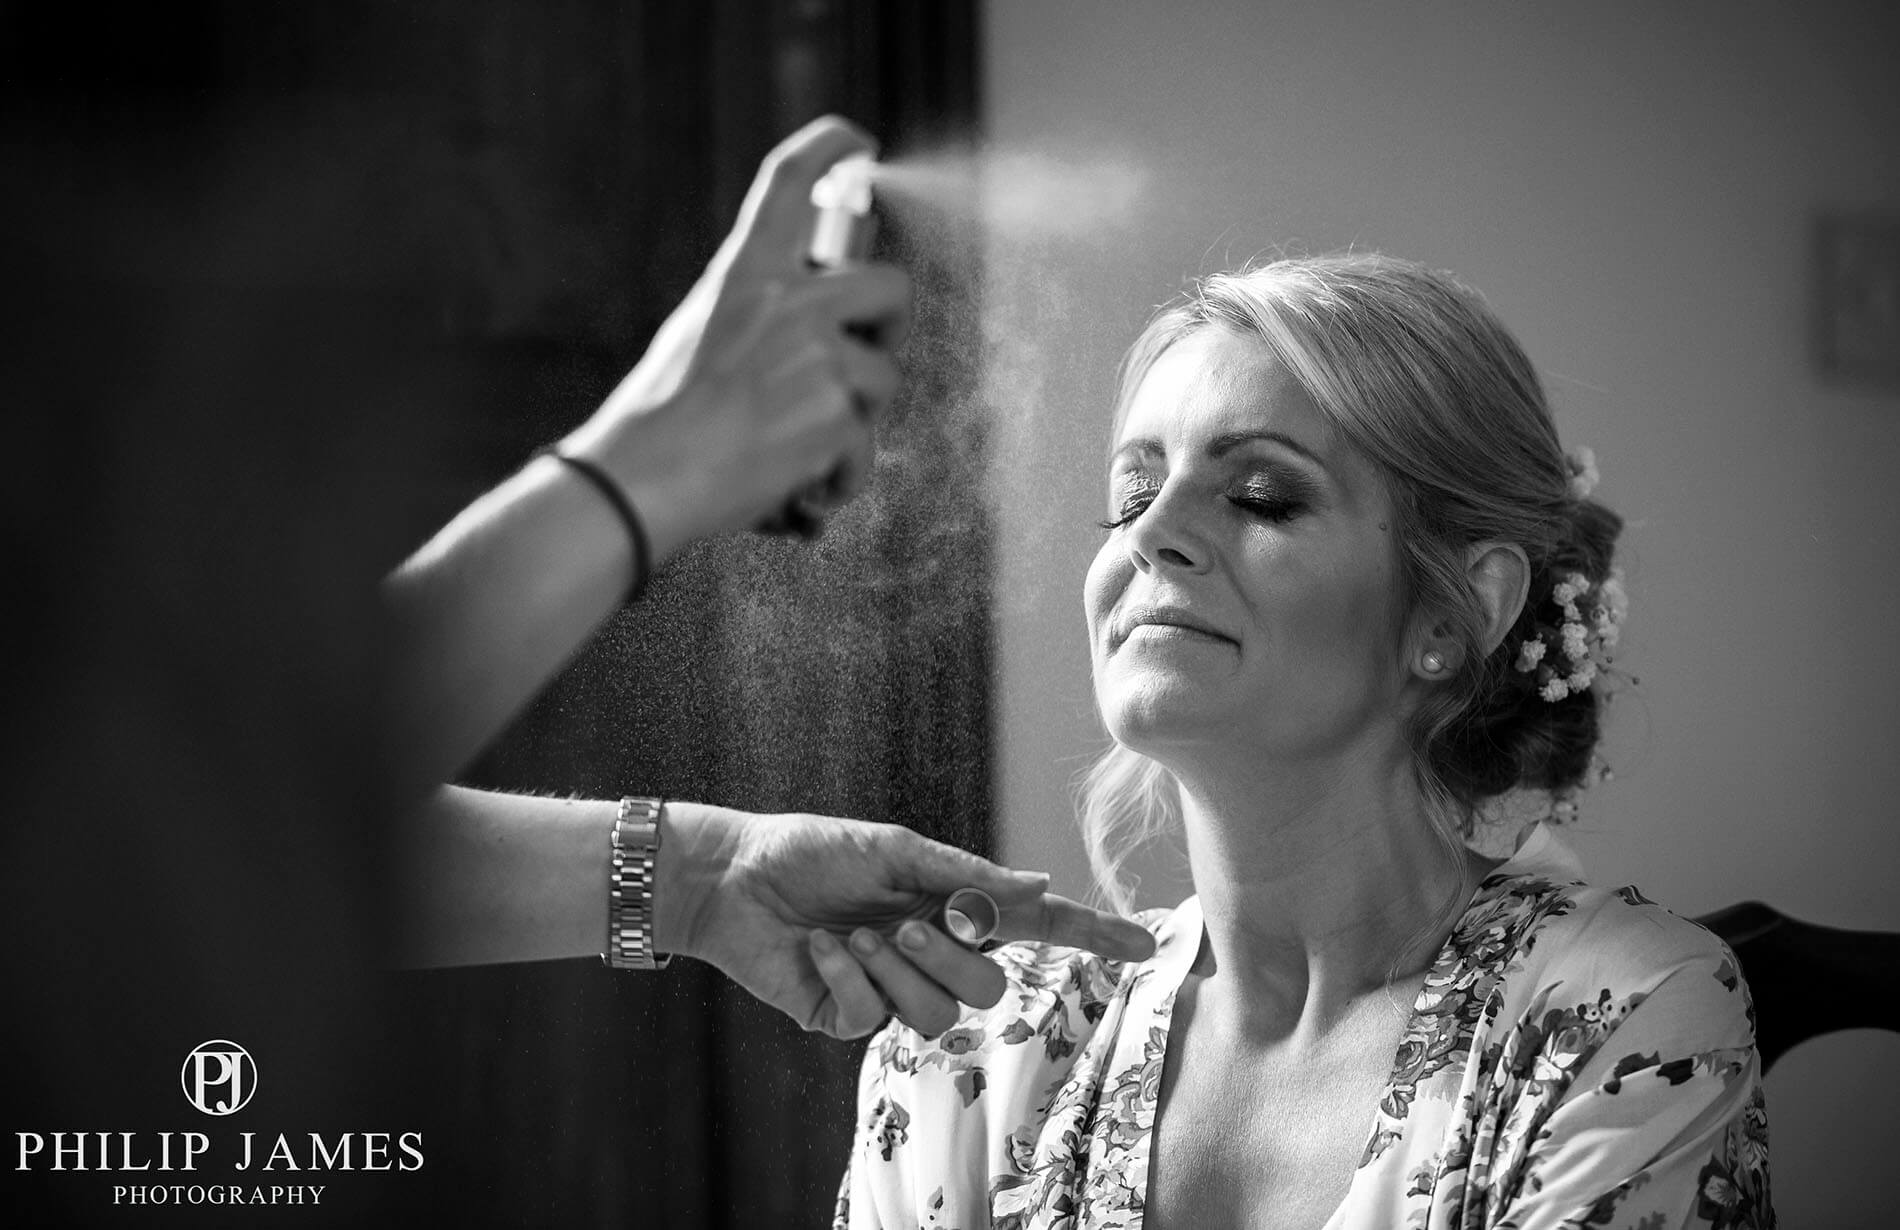 Philip James specializing in Wedding Photography Birmingham - Moments (142 of 170)